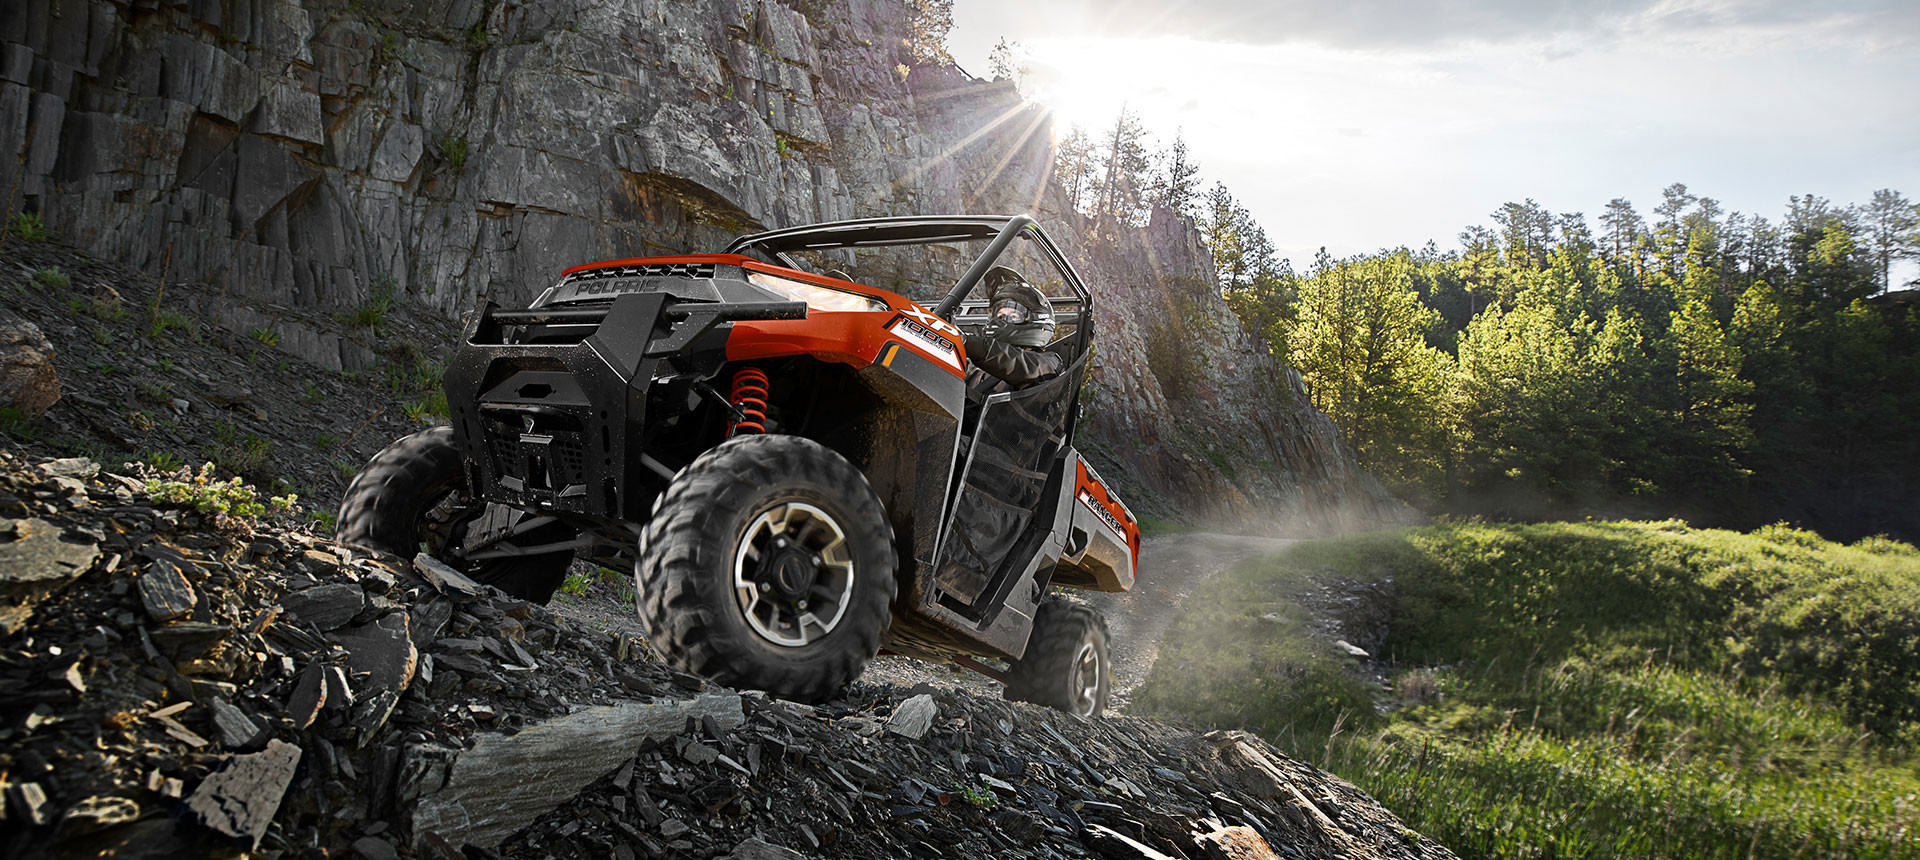 2020 RANGER® XP 1000 High Lifter Edition Instagram image 2